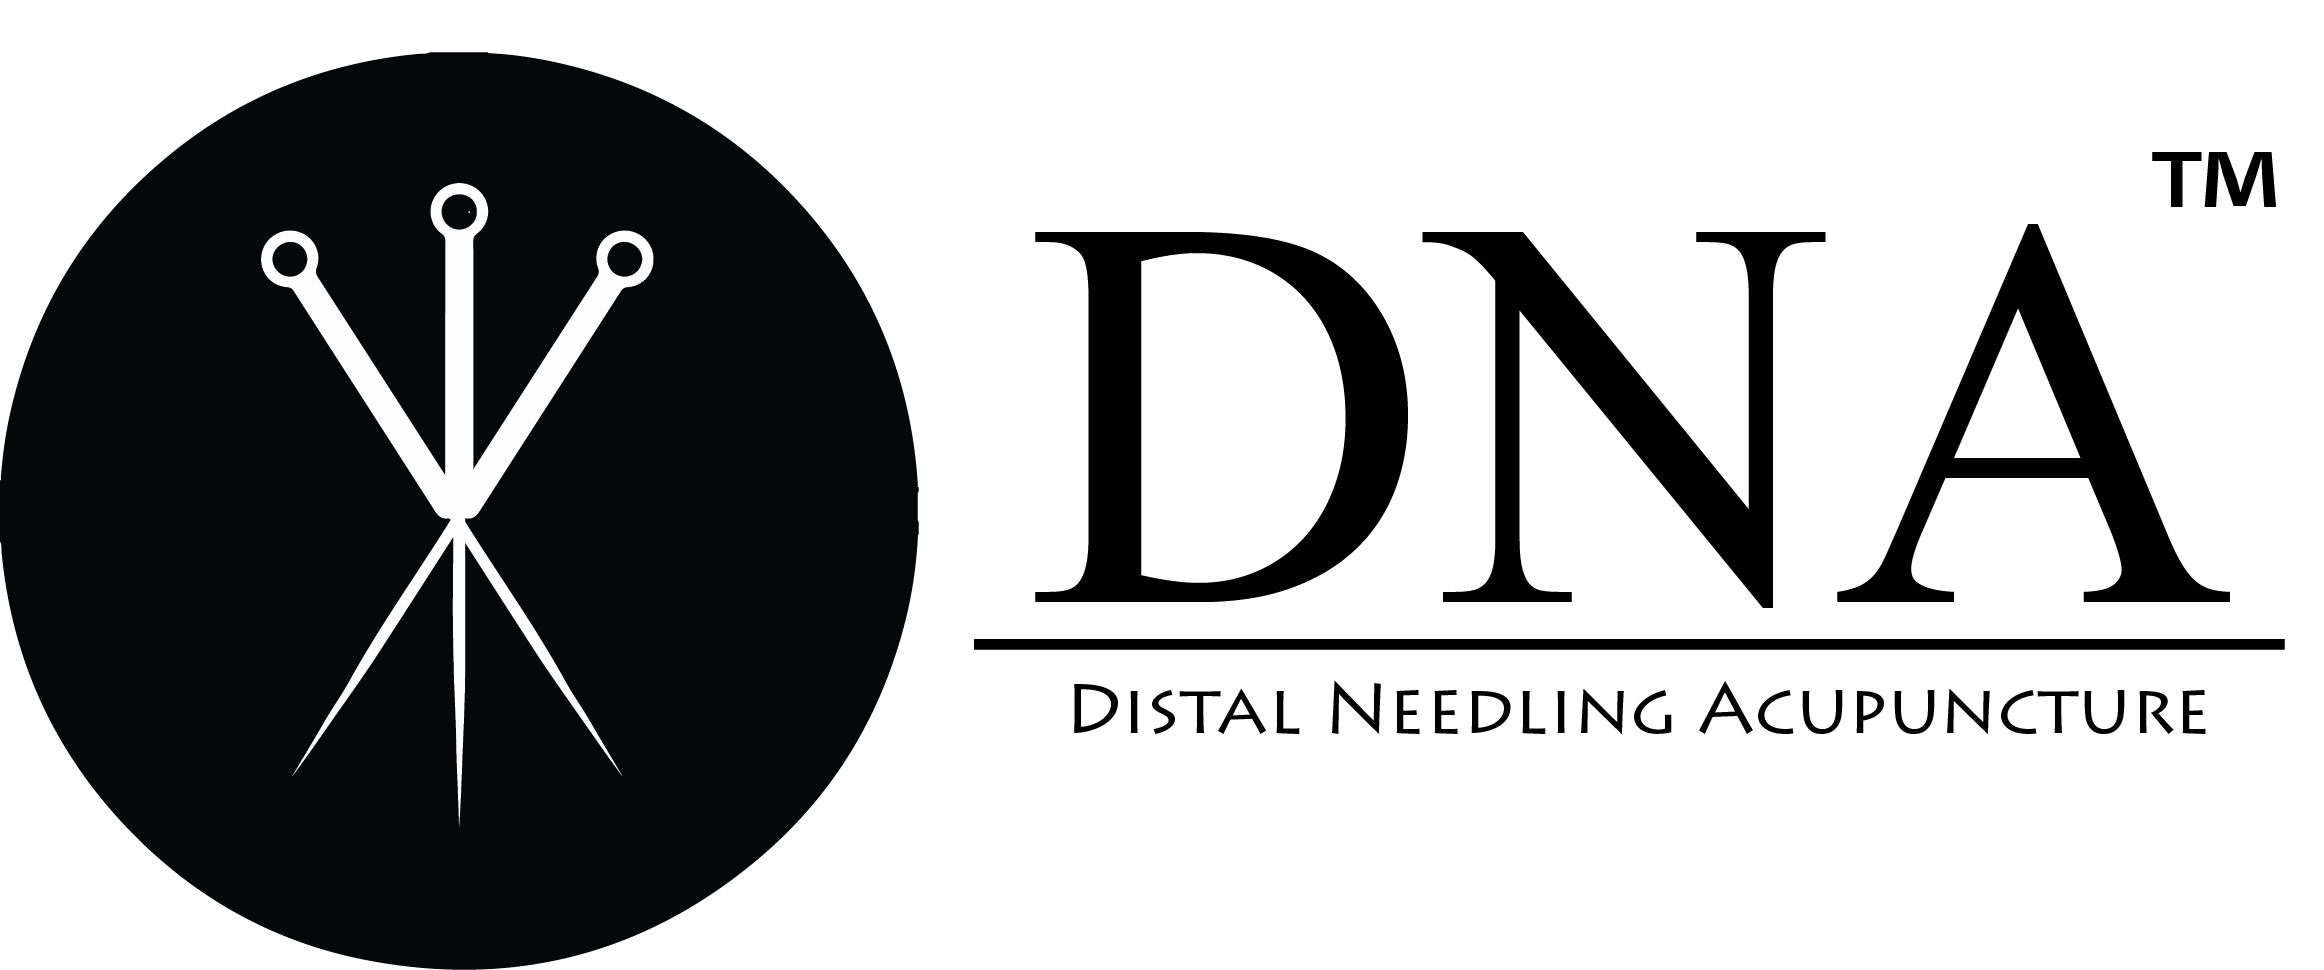 What Is Distal Needling Acupuncture